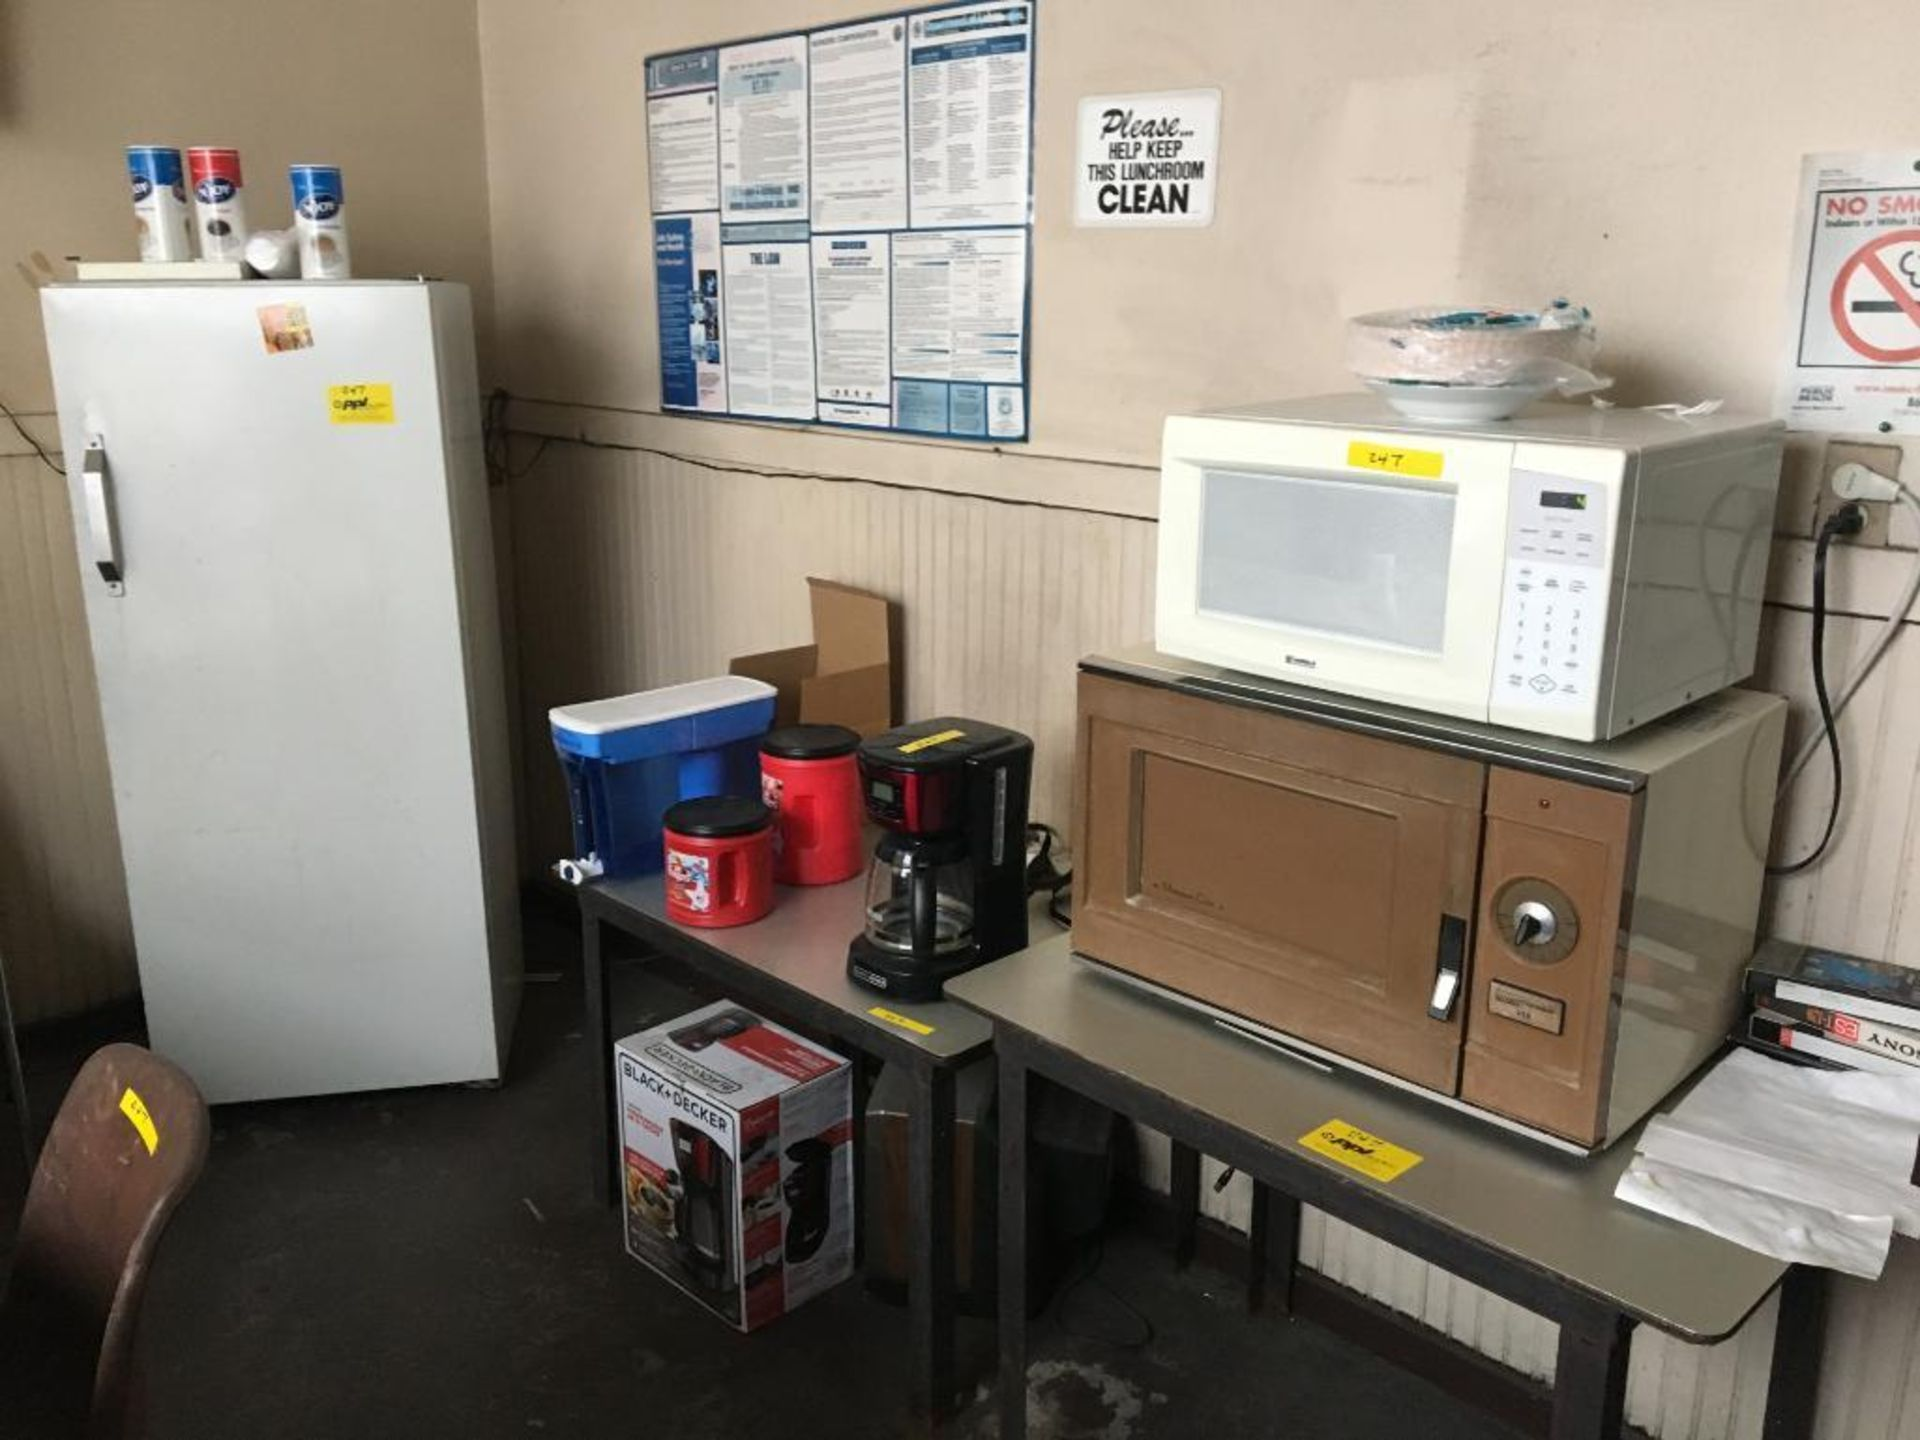 Lot 247 - LOT: Contents of Break Room including (1) Kenmore Refrigerator Model 363.9630010, (2) Assorted Micro